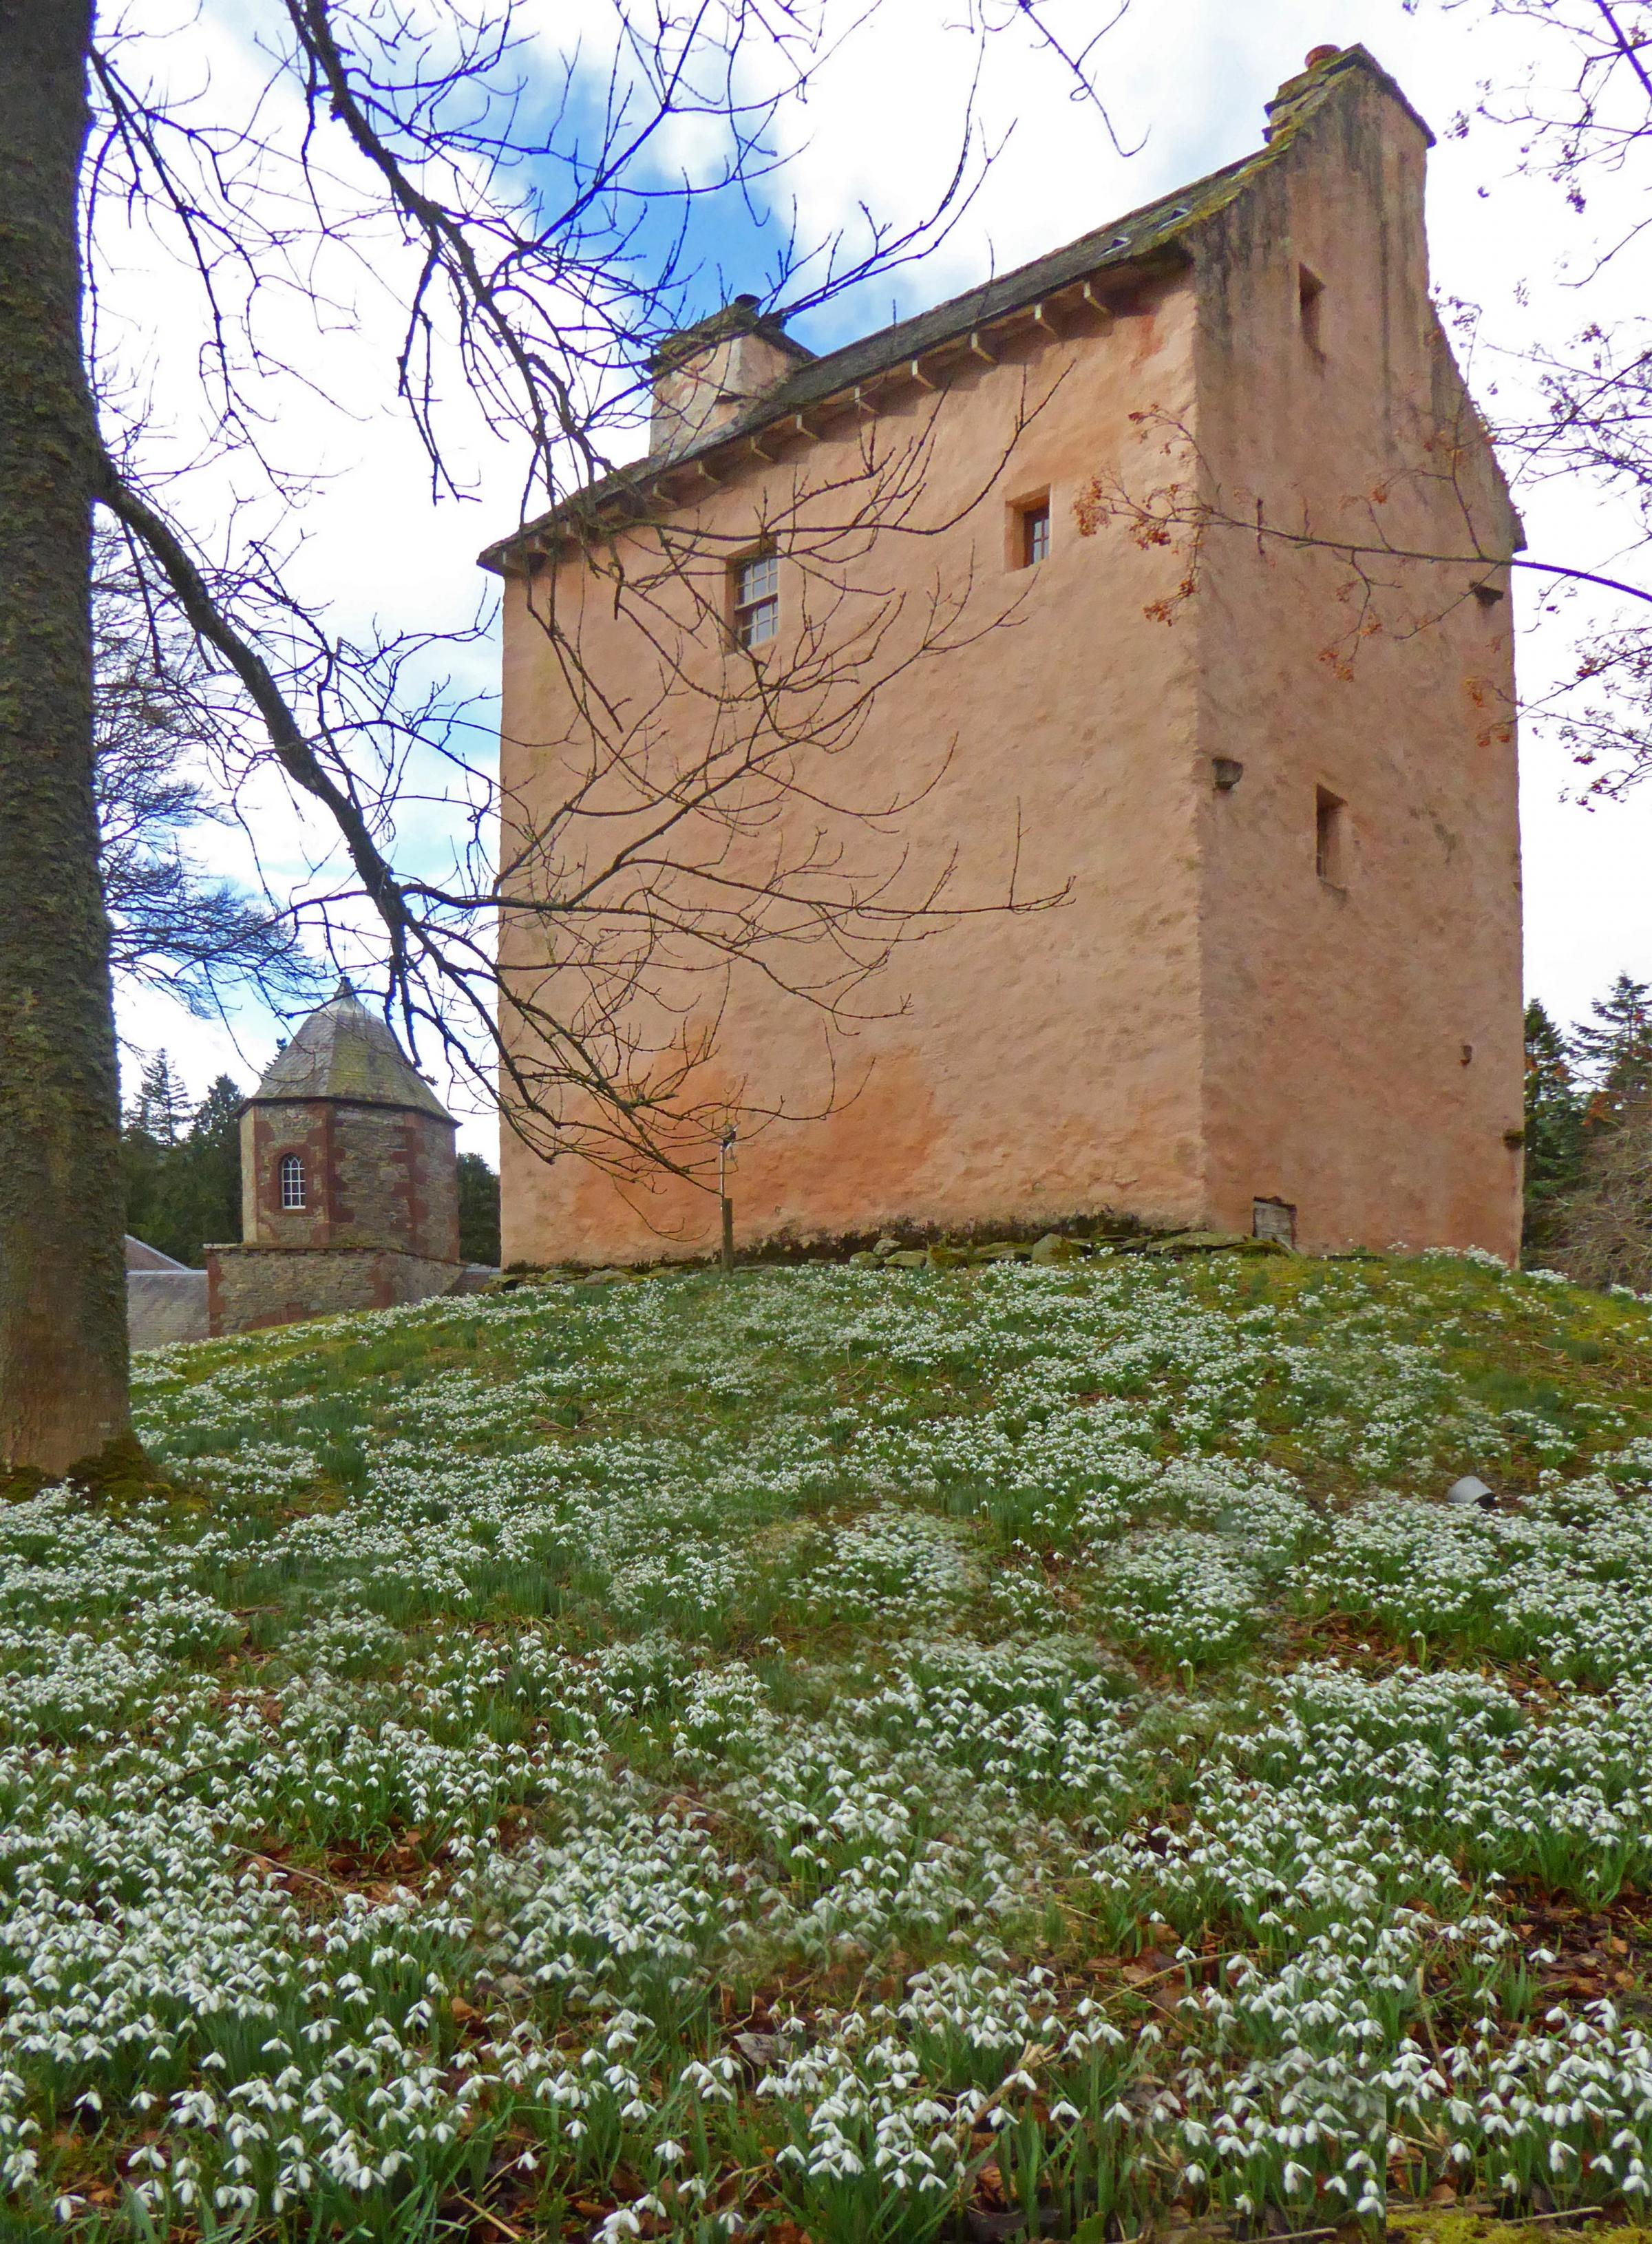 This photo, of Snowdrops at Barns Tower, was sent in by Peeblesshire News reader David Baird. Send us your readers' photos by emailing editorial@peeblesshirenews.com – or why not join our Peeblesshire News Camera Club? Details can be found at